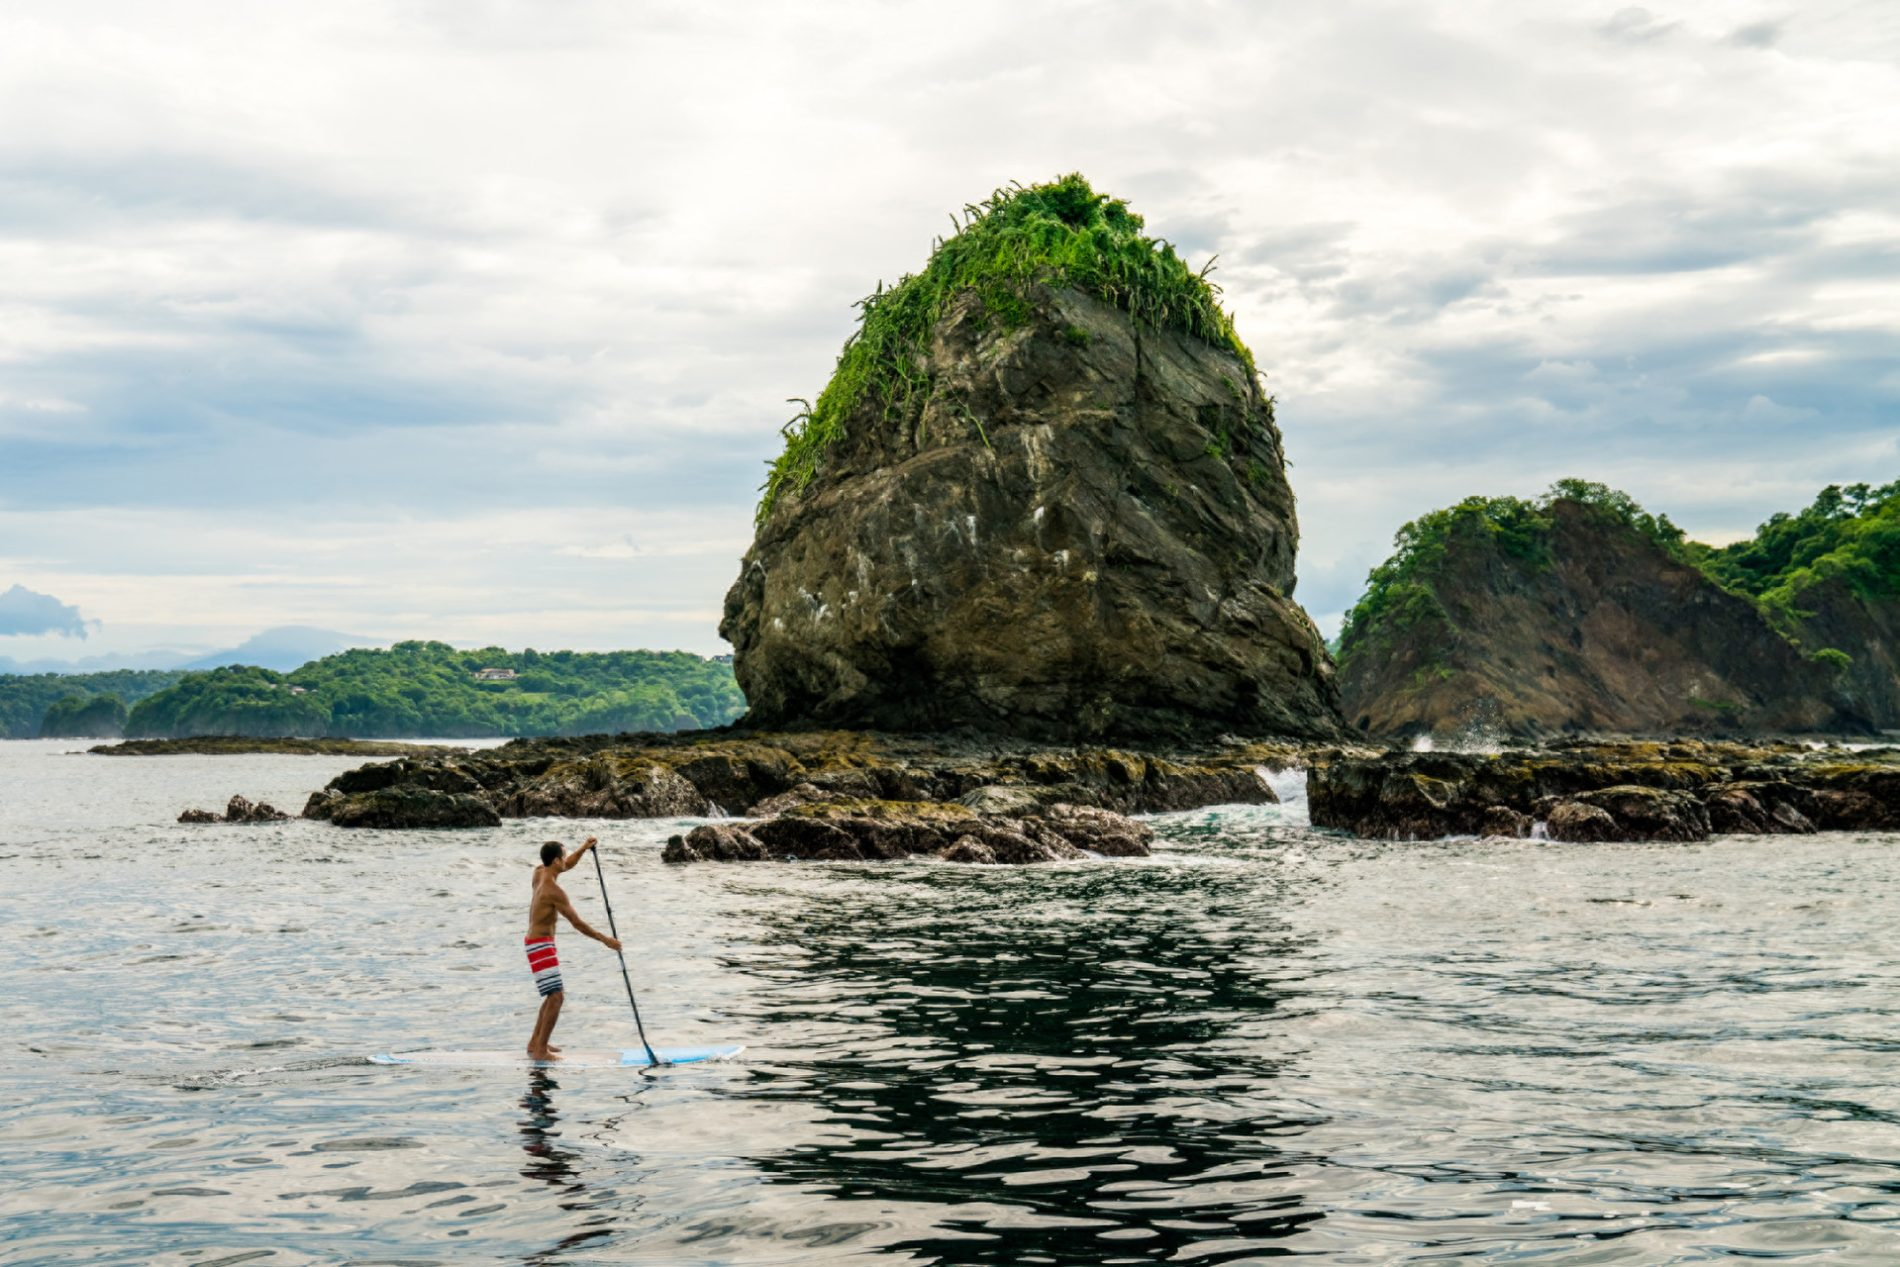 Stand up paddle boarding off the coast of Peninsula Papagayo Costa Rica